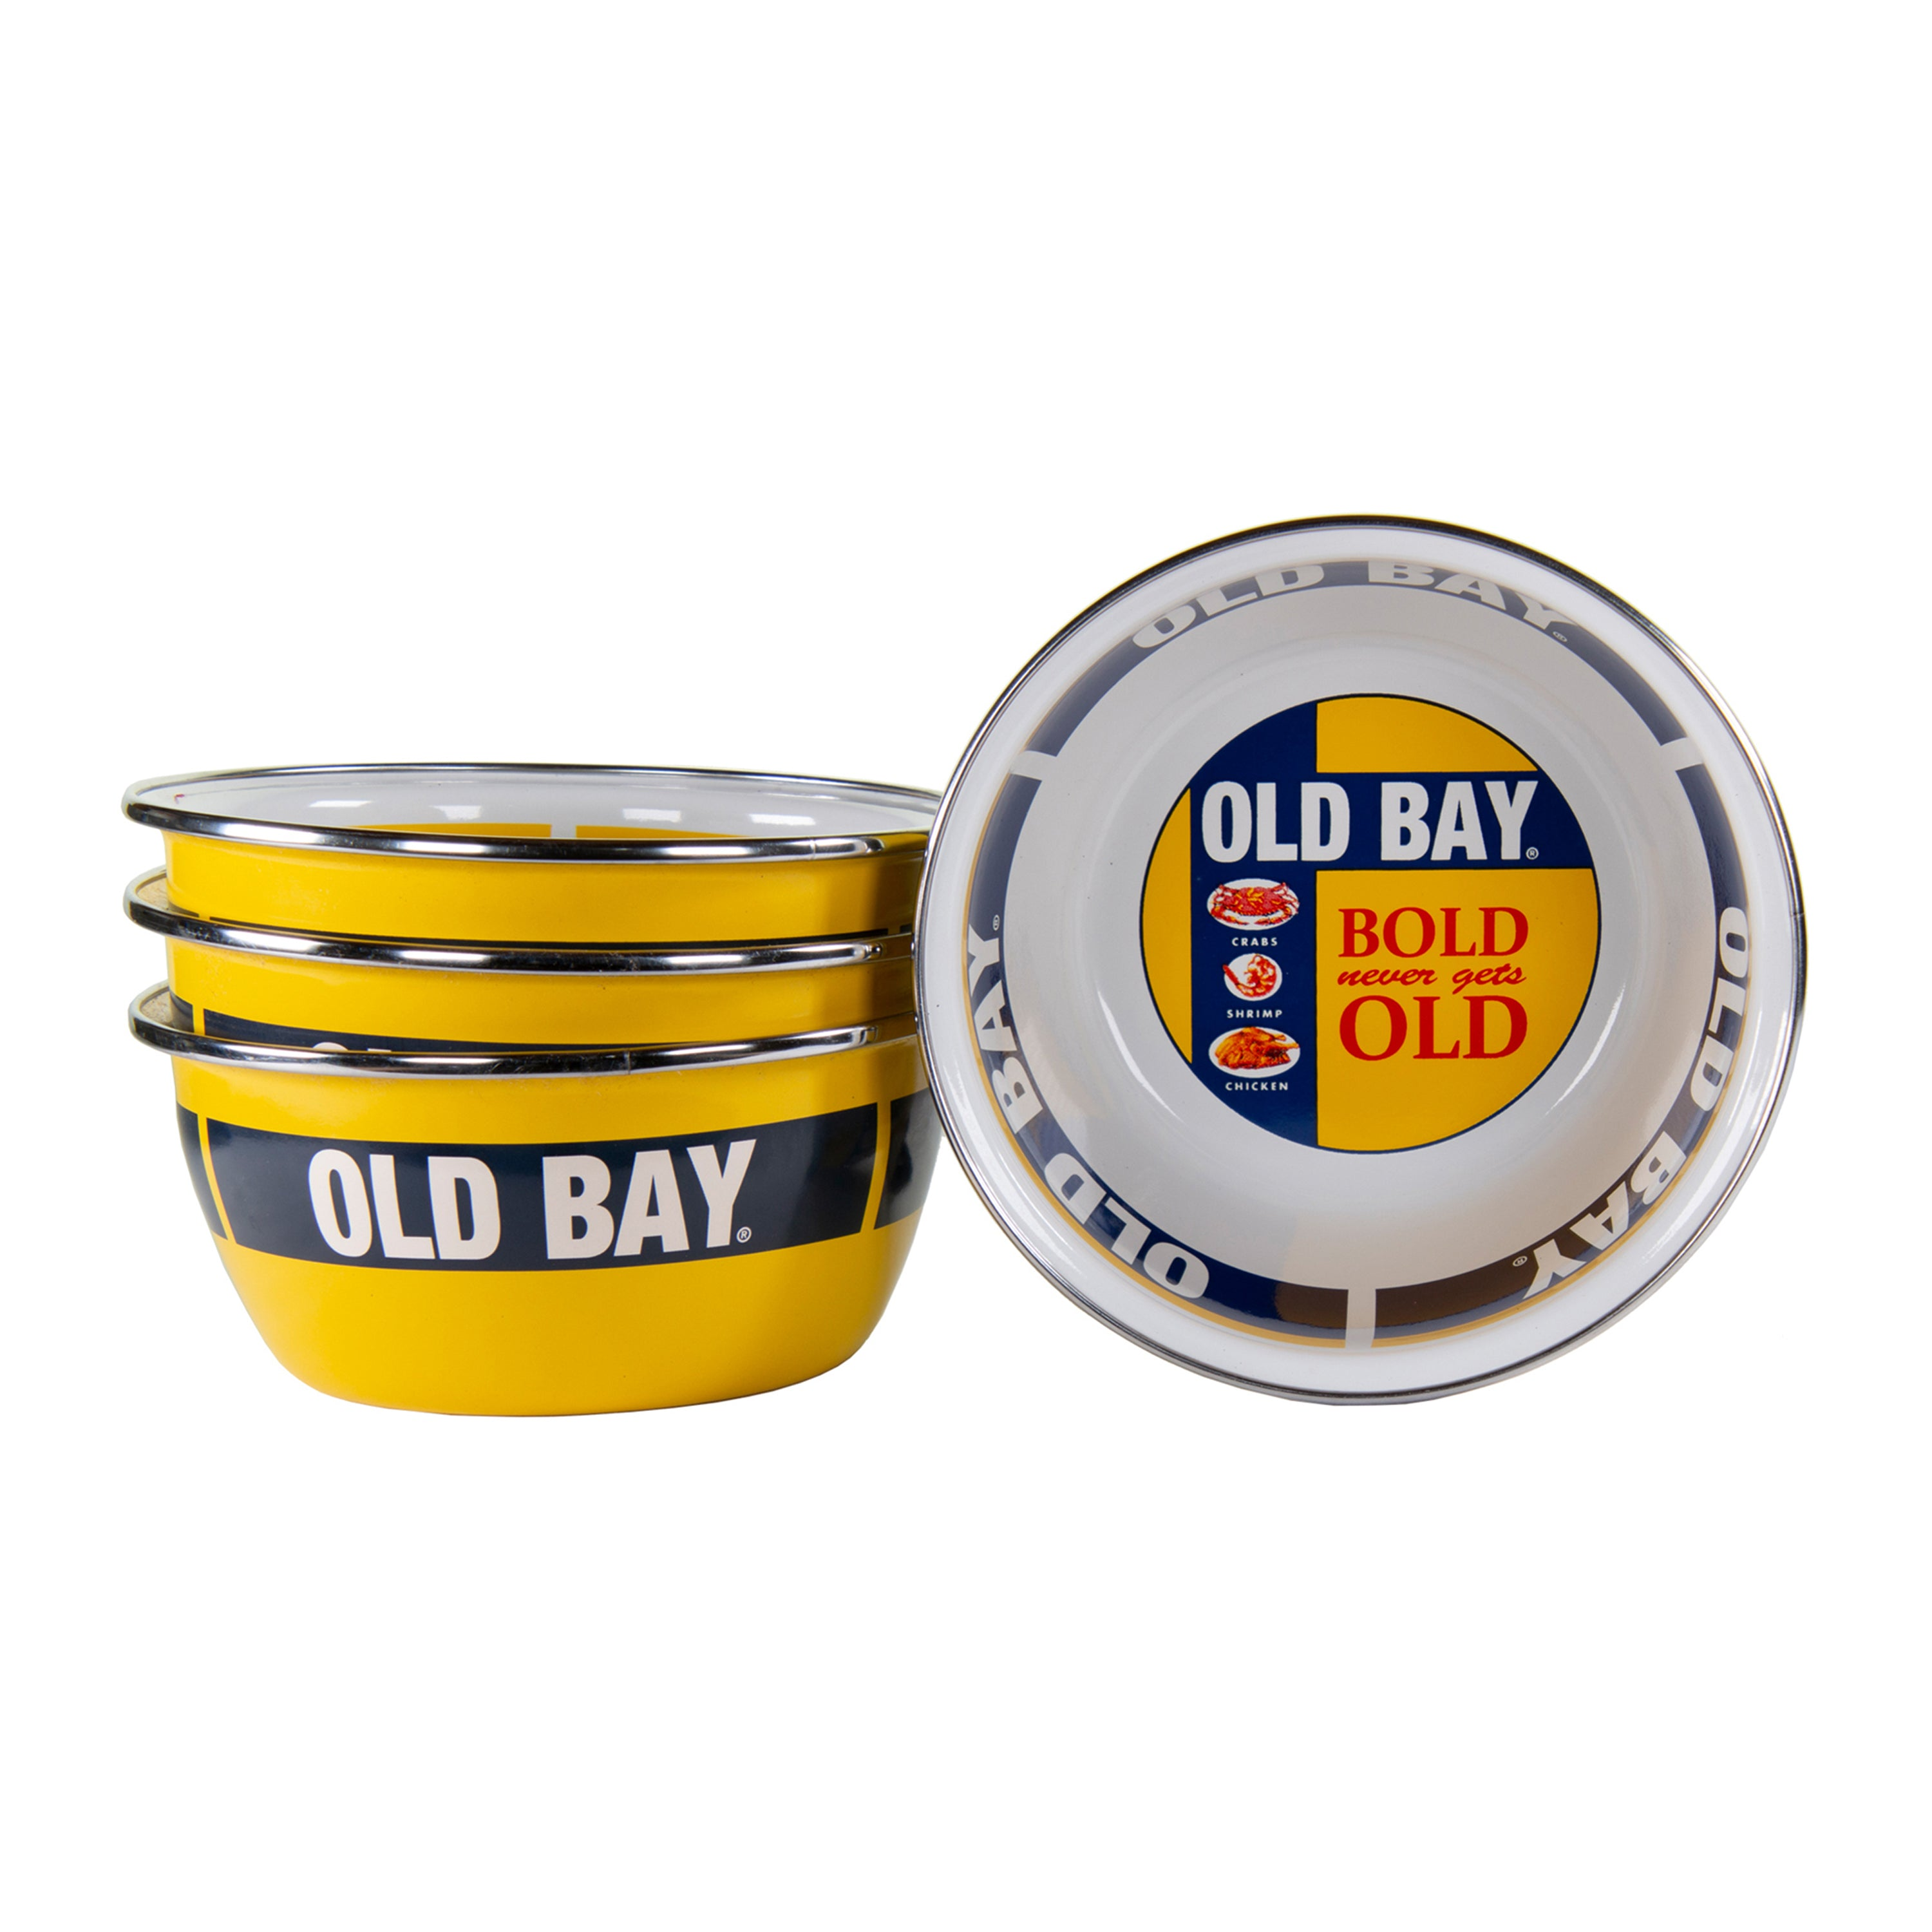 OB61S4 - Set of 4 Old Bay Salad Bowls Image 1